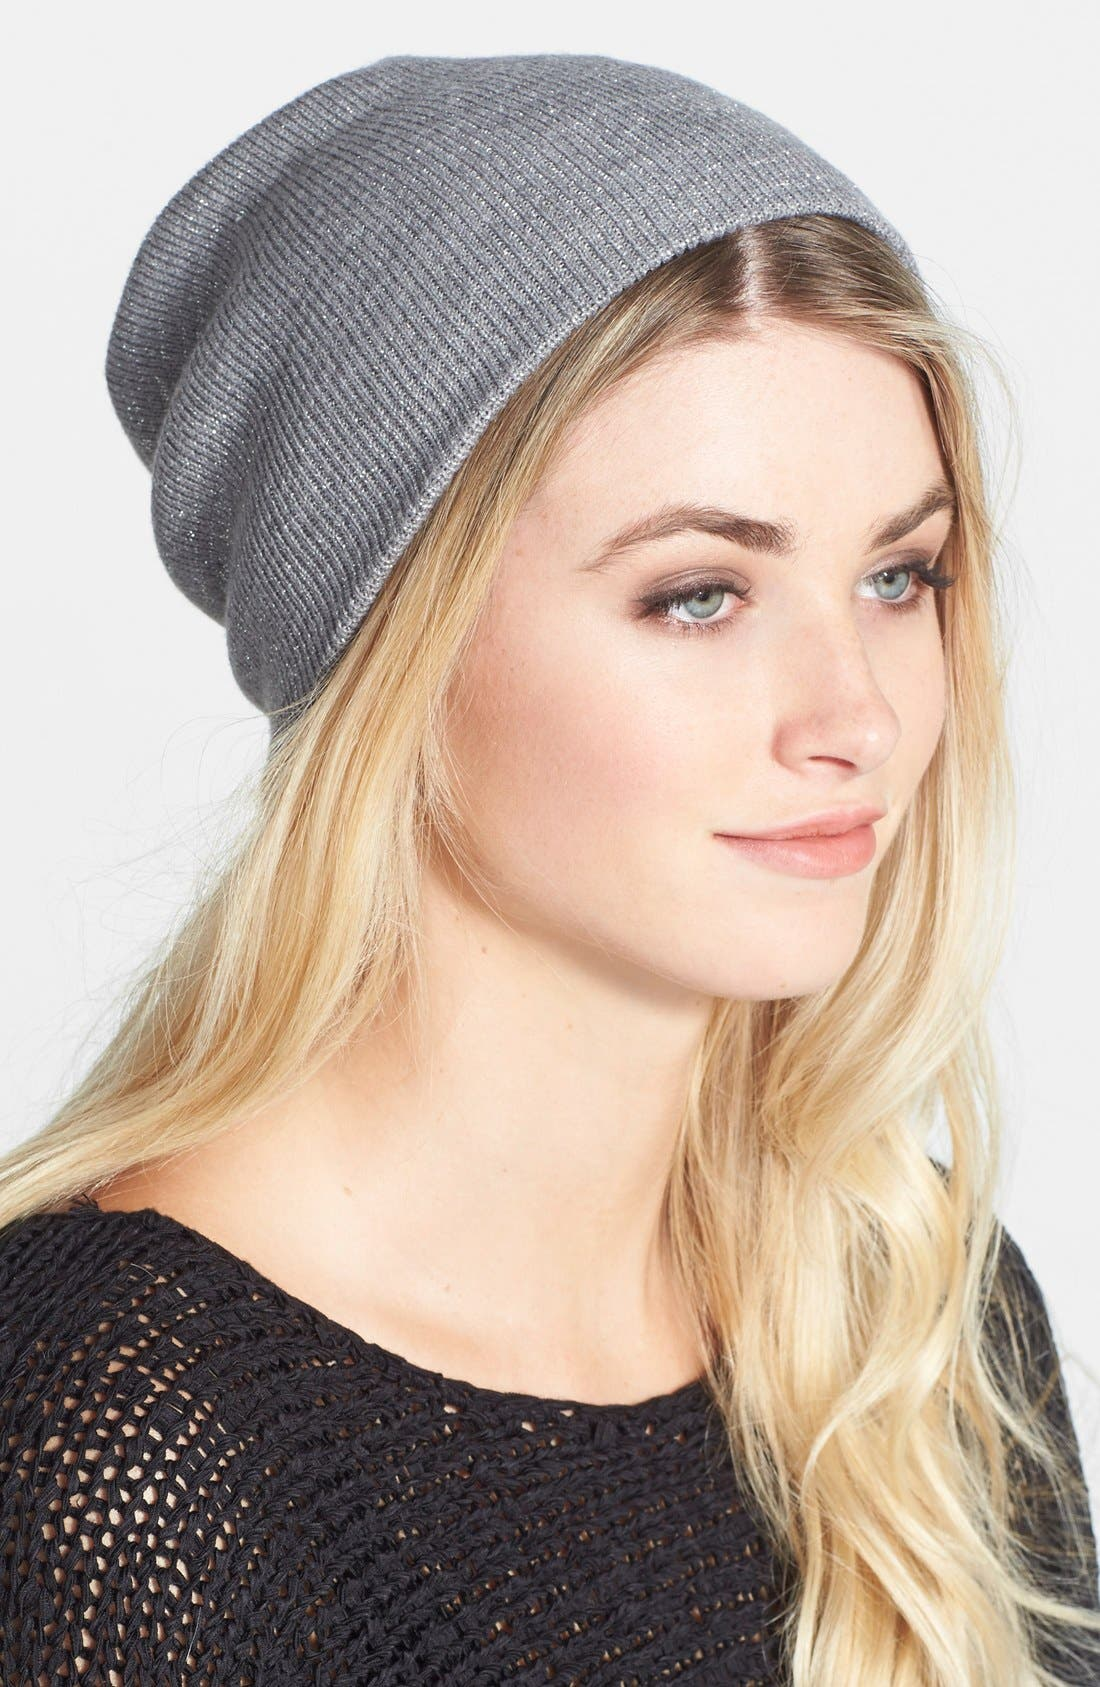 Alternate Image 1 Selected - Phase 3 'Stand Up' Sparkle Beanie